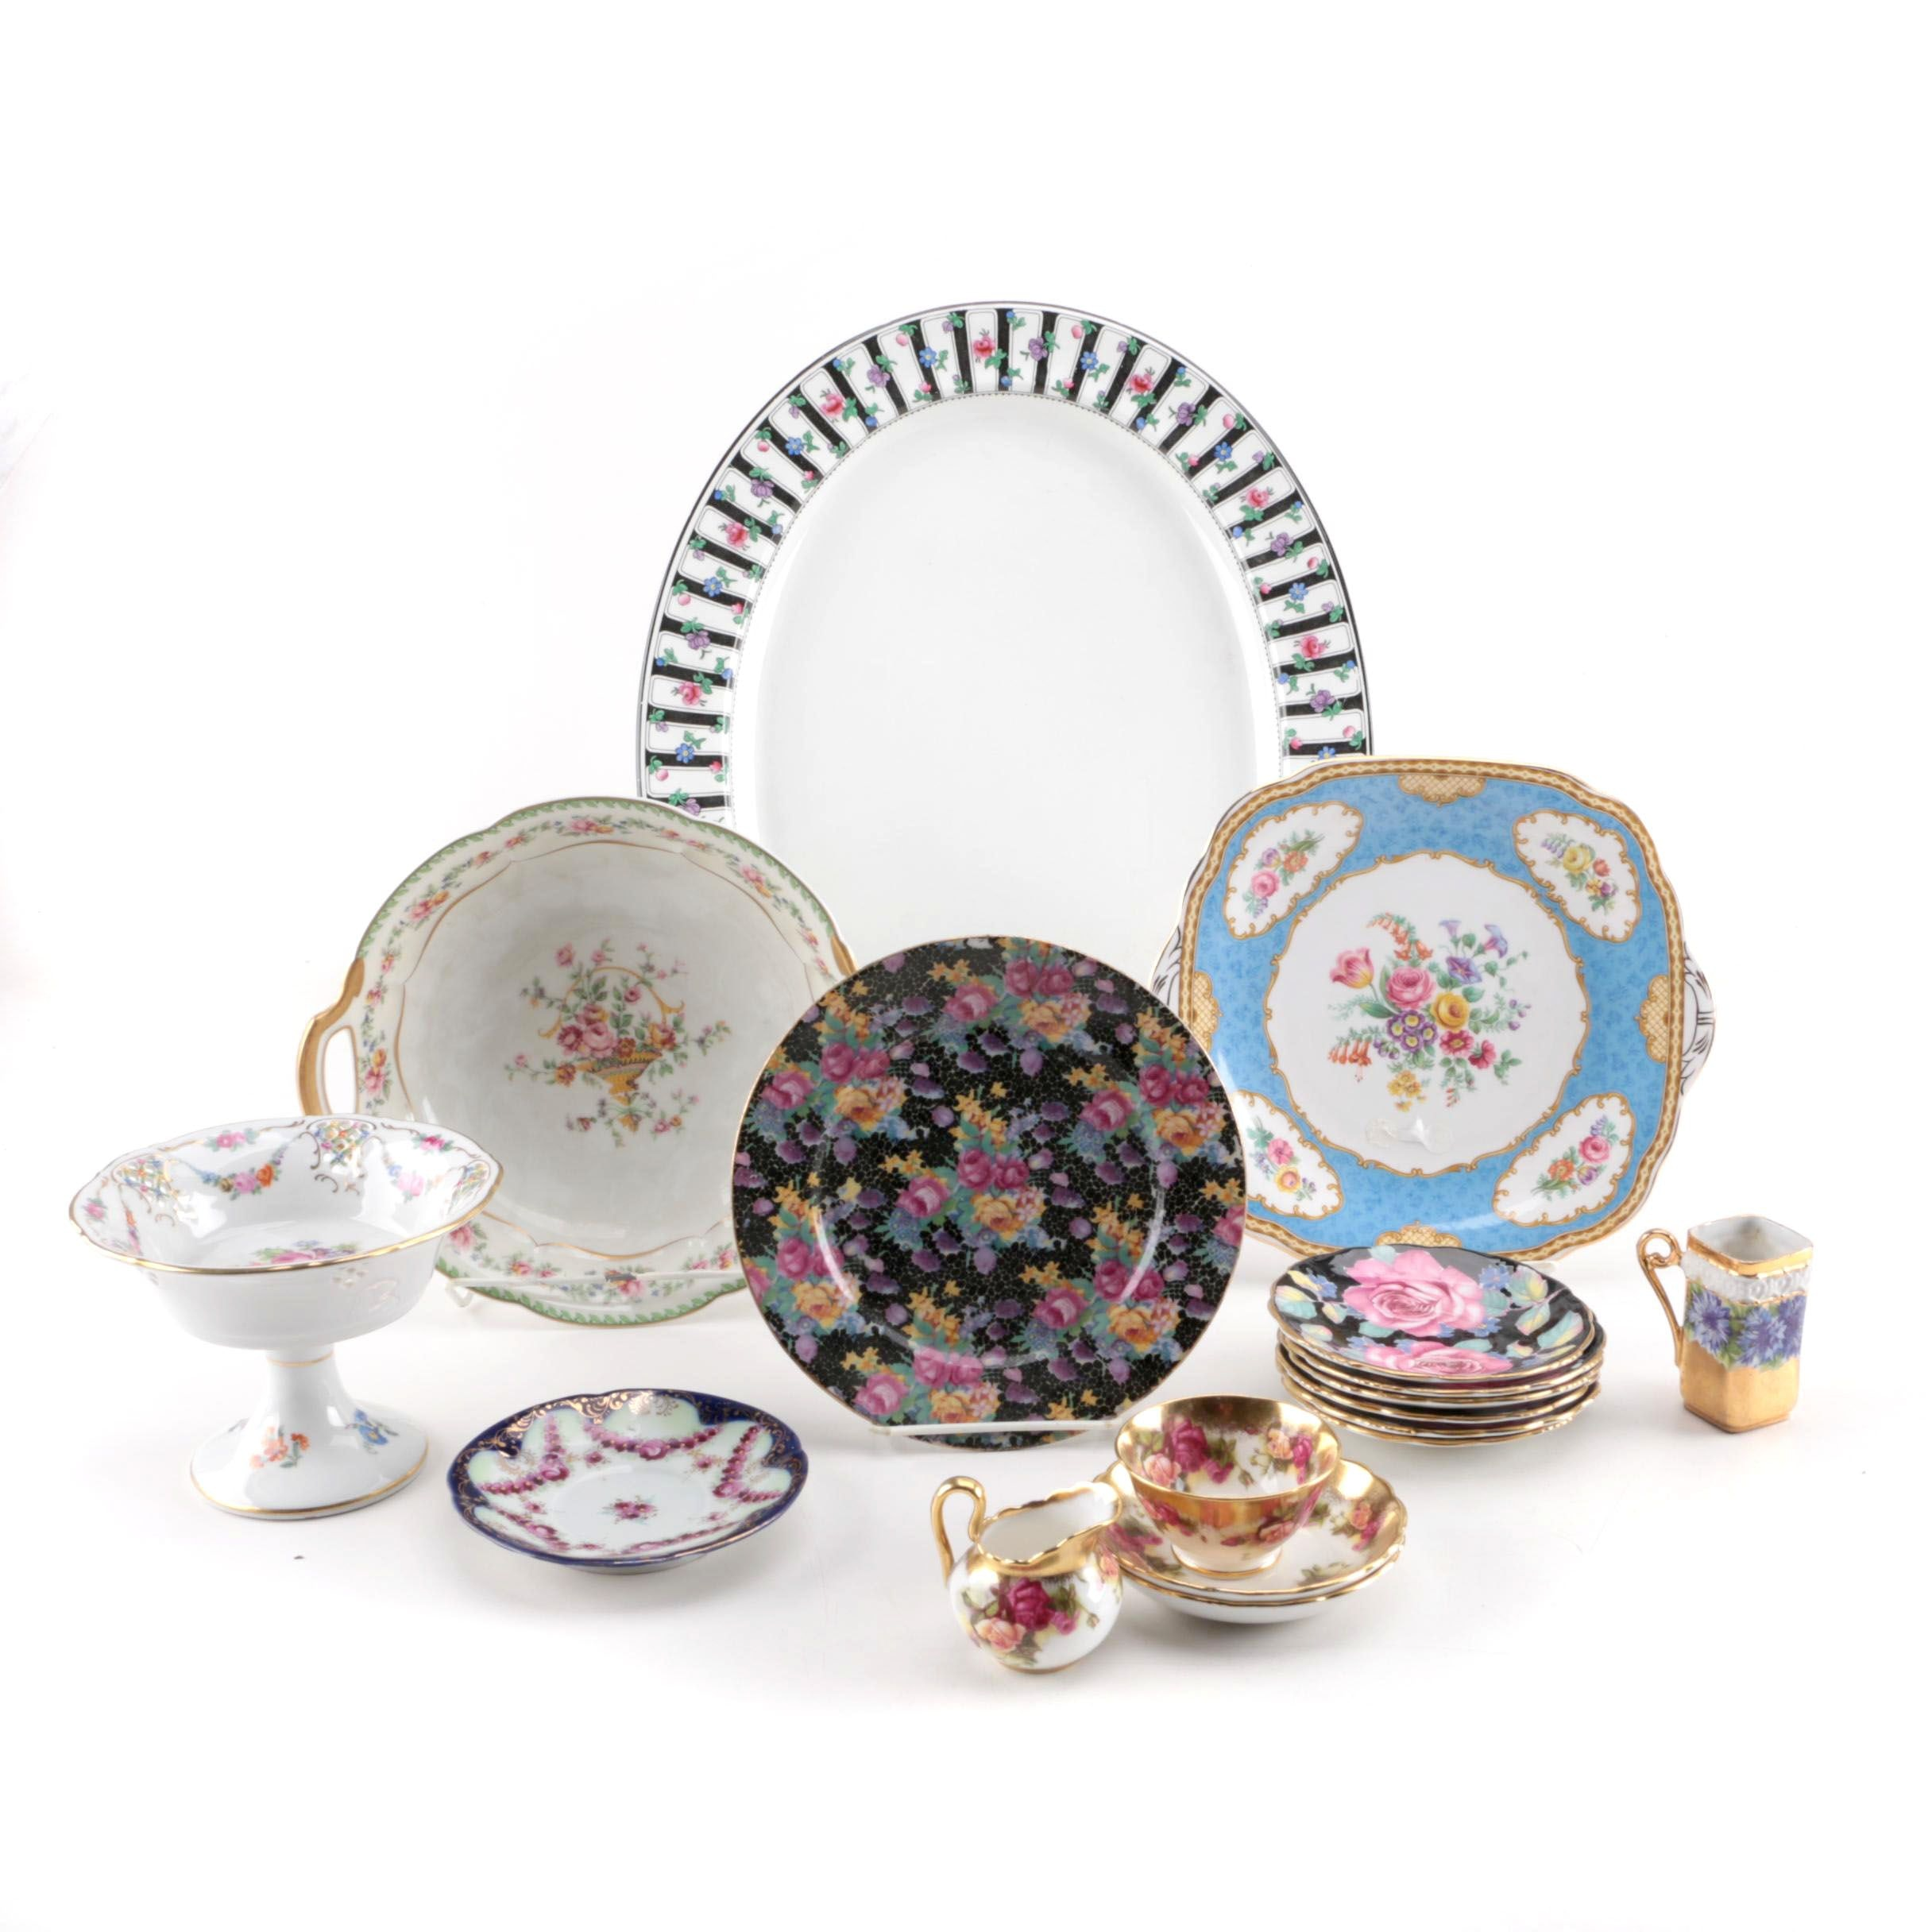 English Porcelain Saucers and Serveware